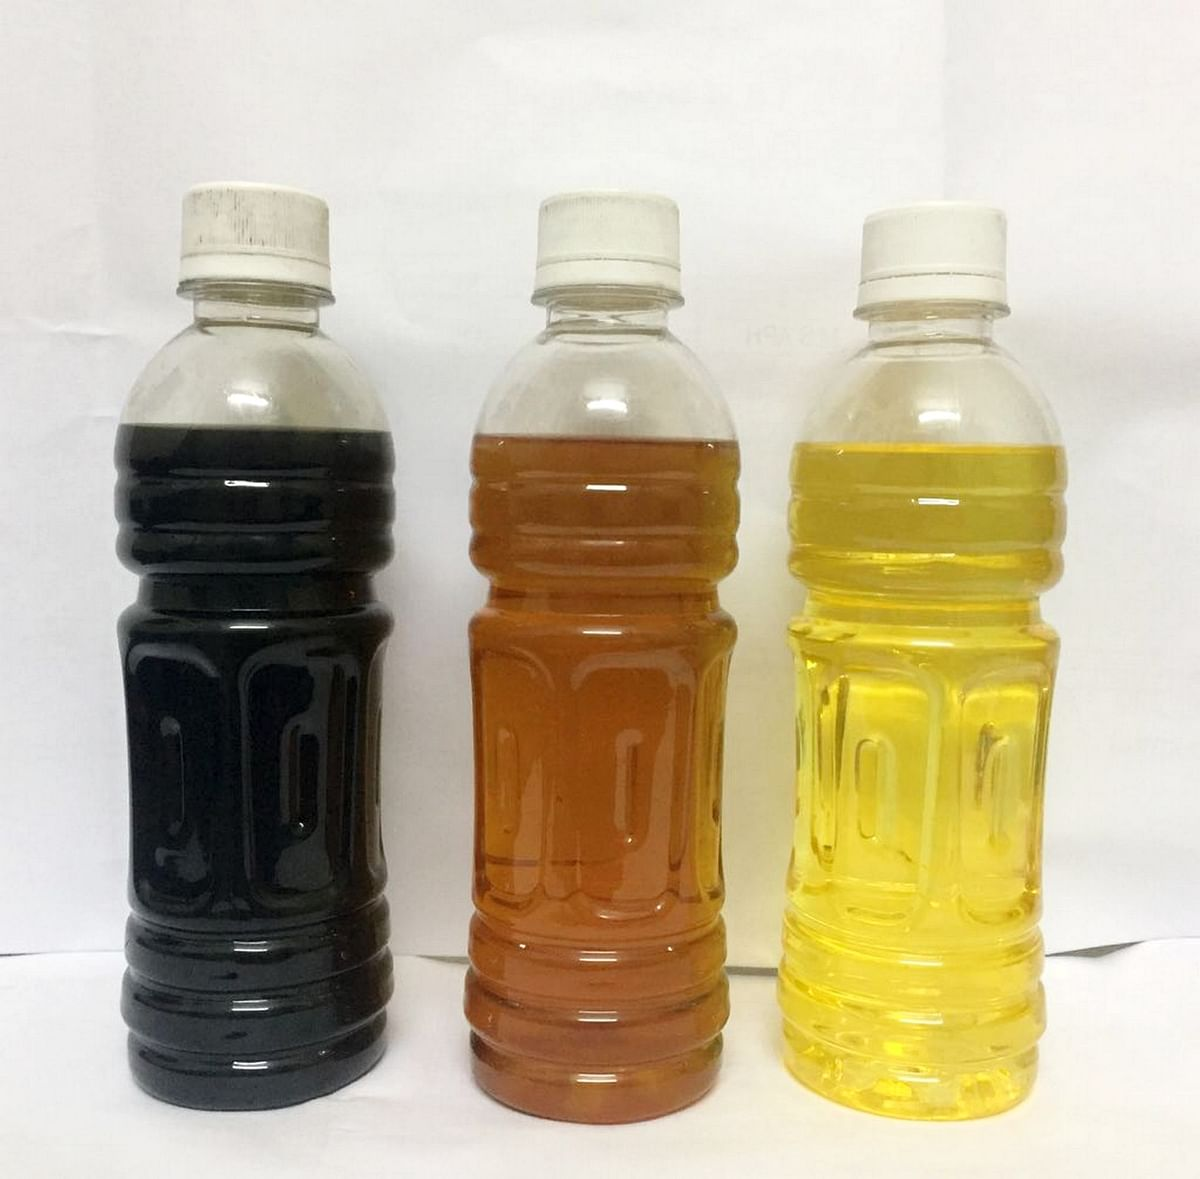 Fuel attained from Plastic waste